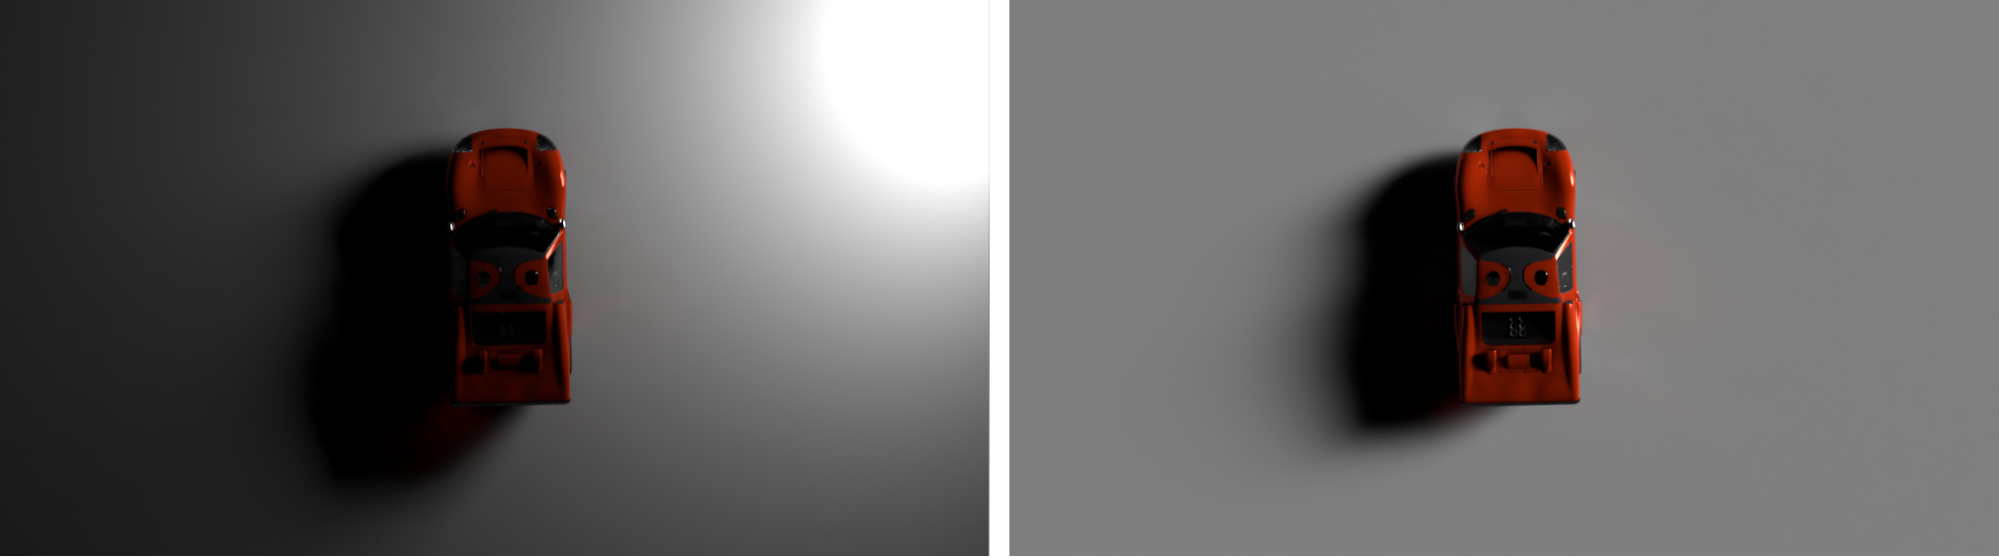 Light source which has a falloff (a glowing plate) VS an infinite light source (a directional light)